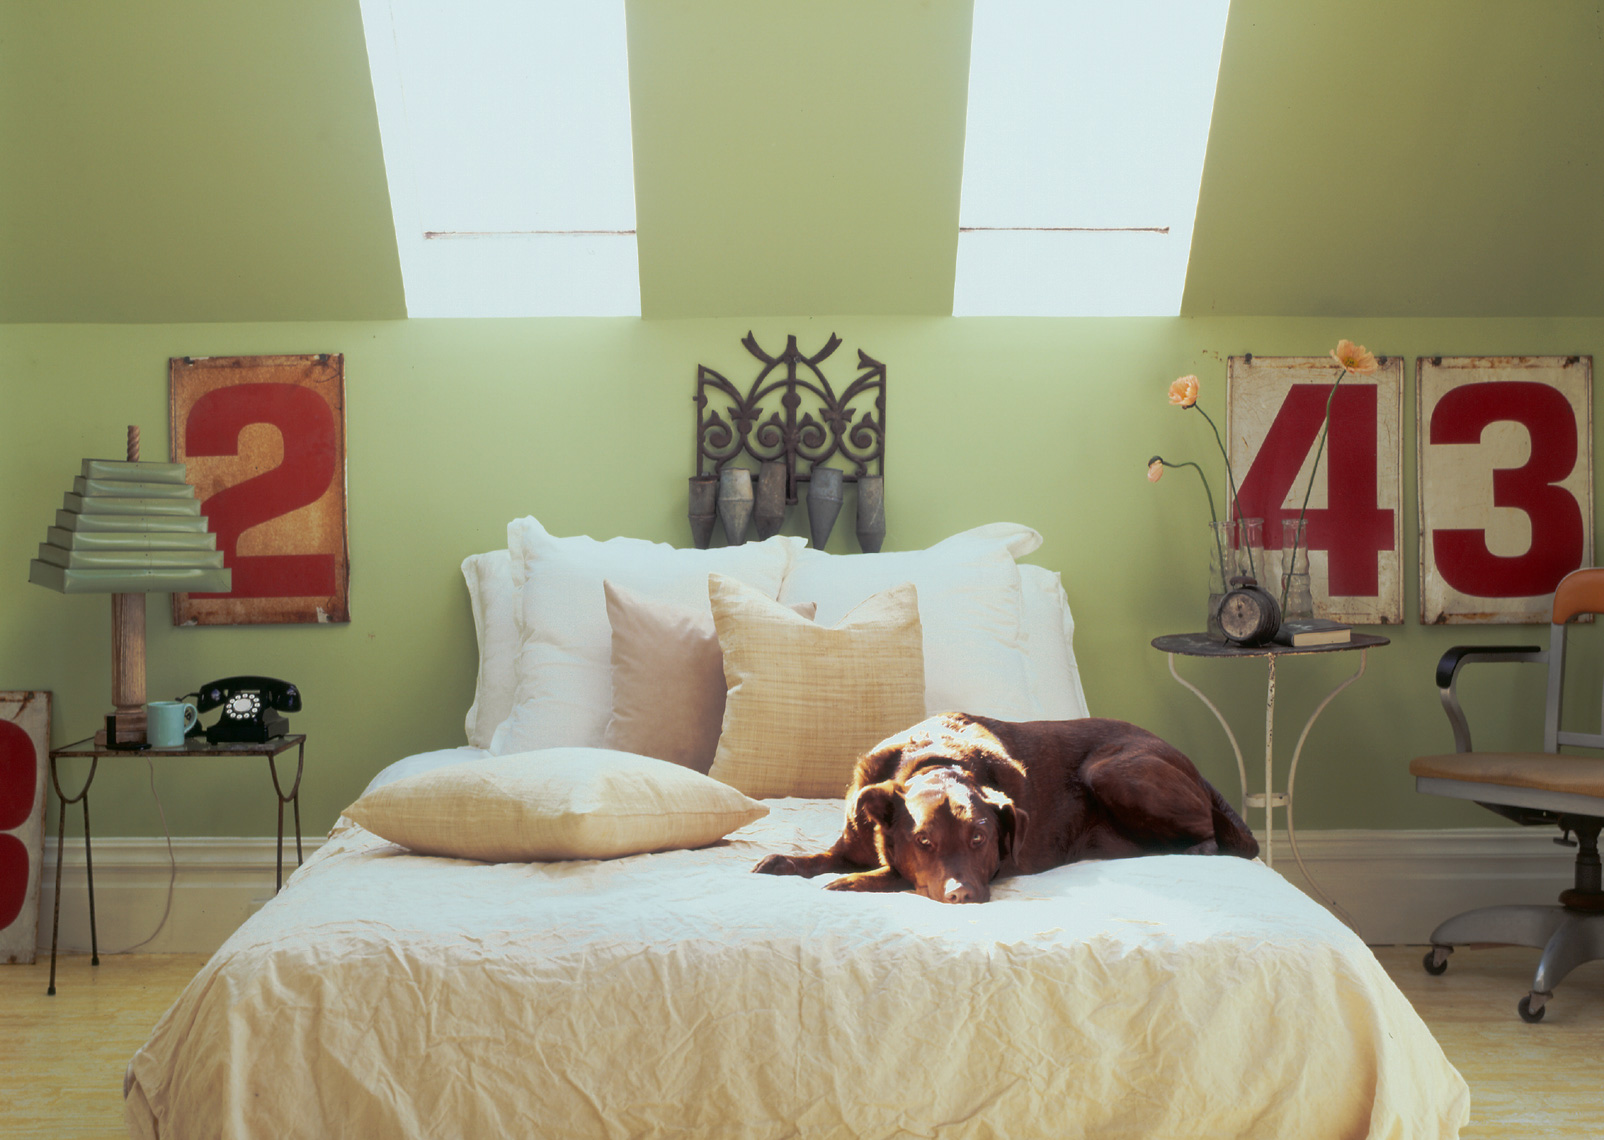 bedroom with brown lab dog sitting on white bedspread with pale green walls